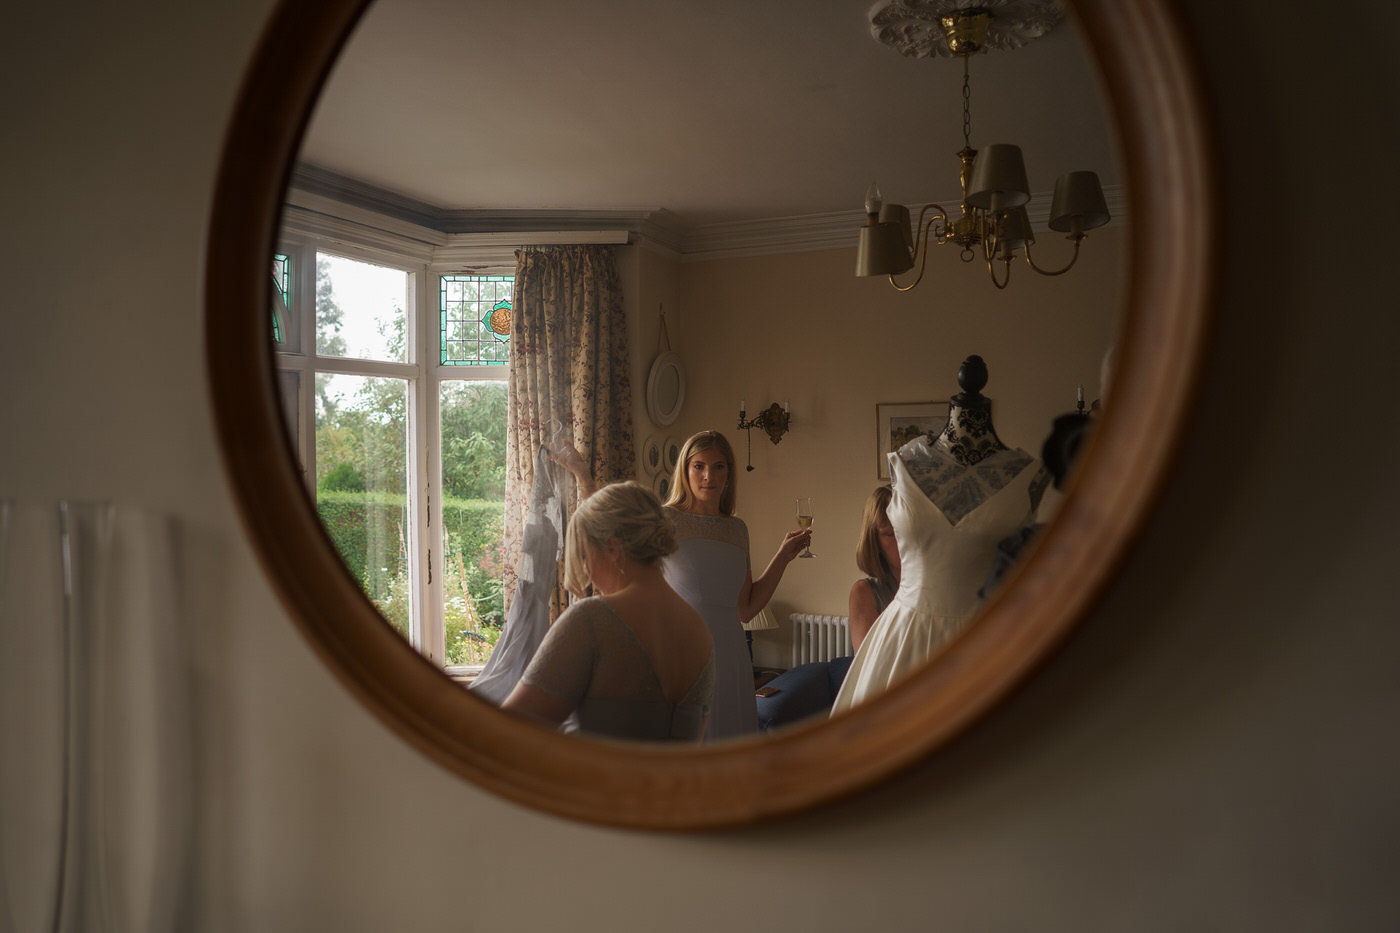 wedding photographer in shropshire captures candid moments at wedding in mirror